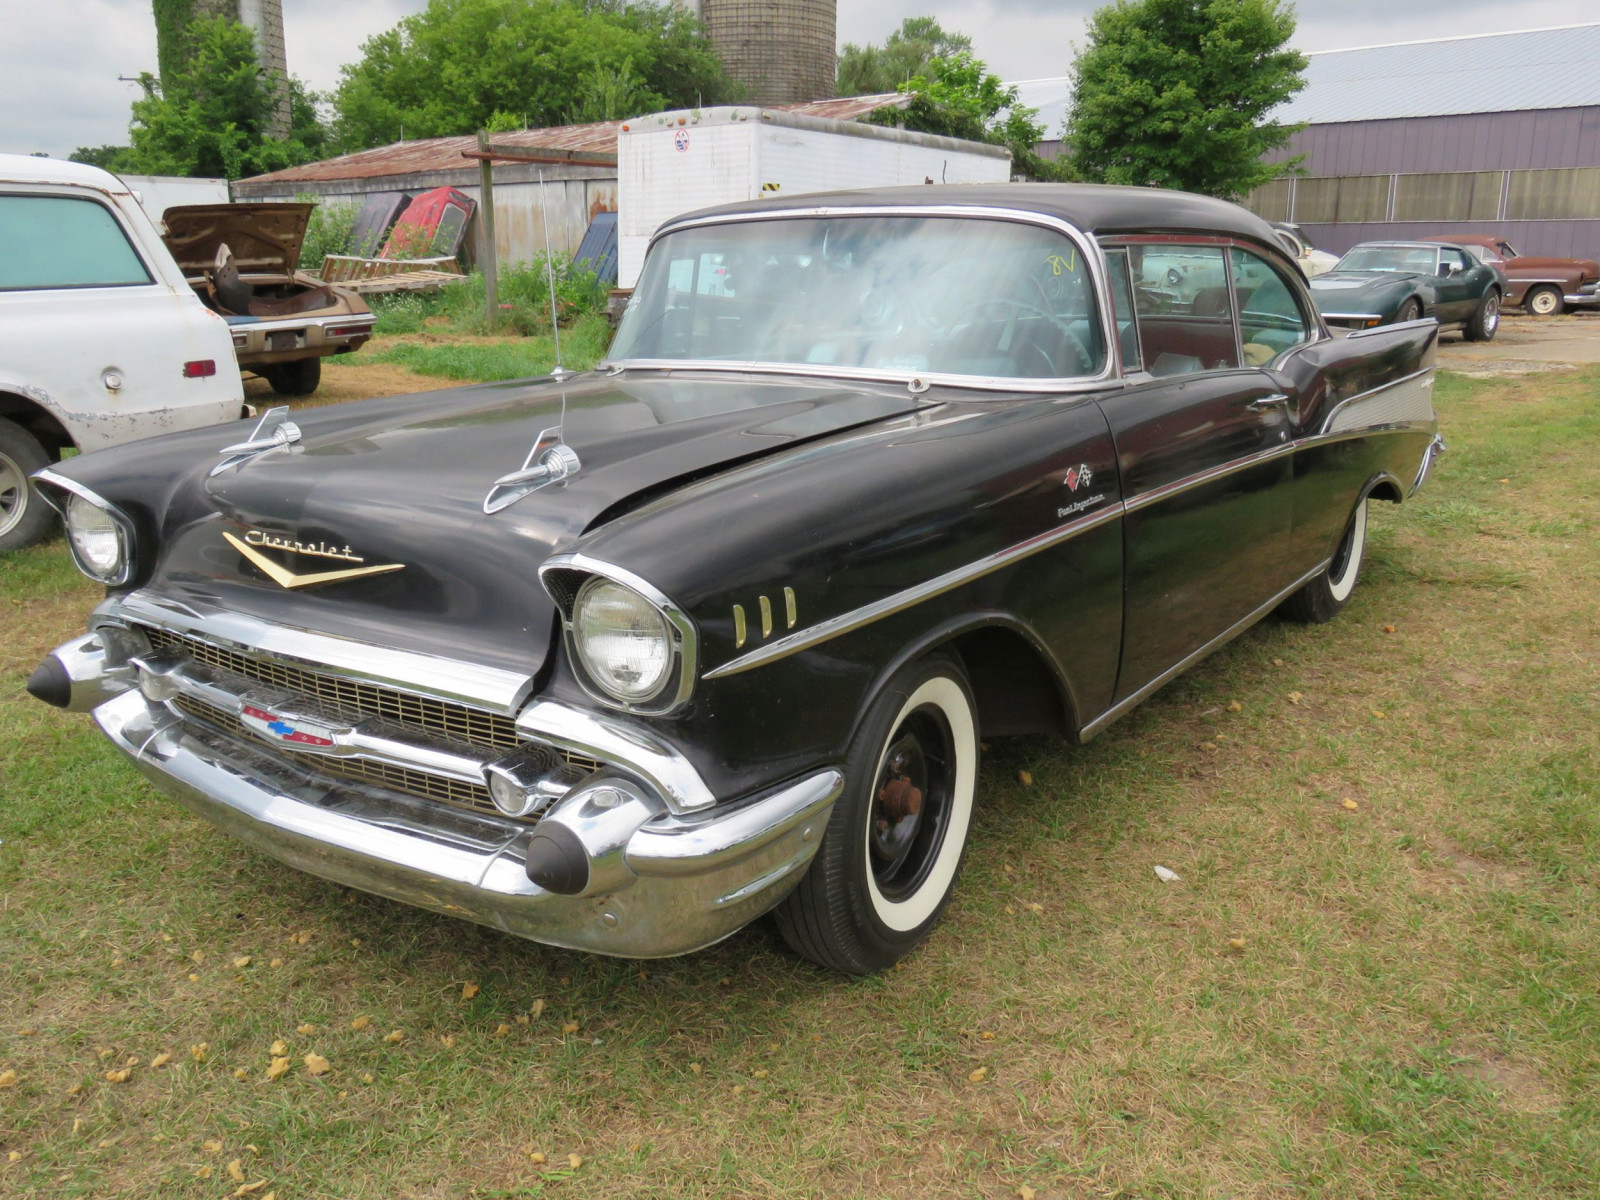 1957 Chevrolet Belair Fuel Injected 2dr HT - Image 1